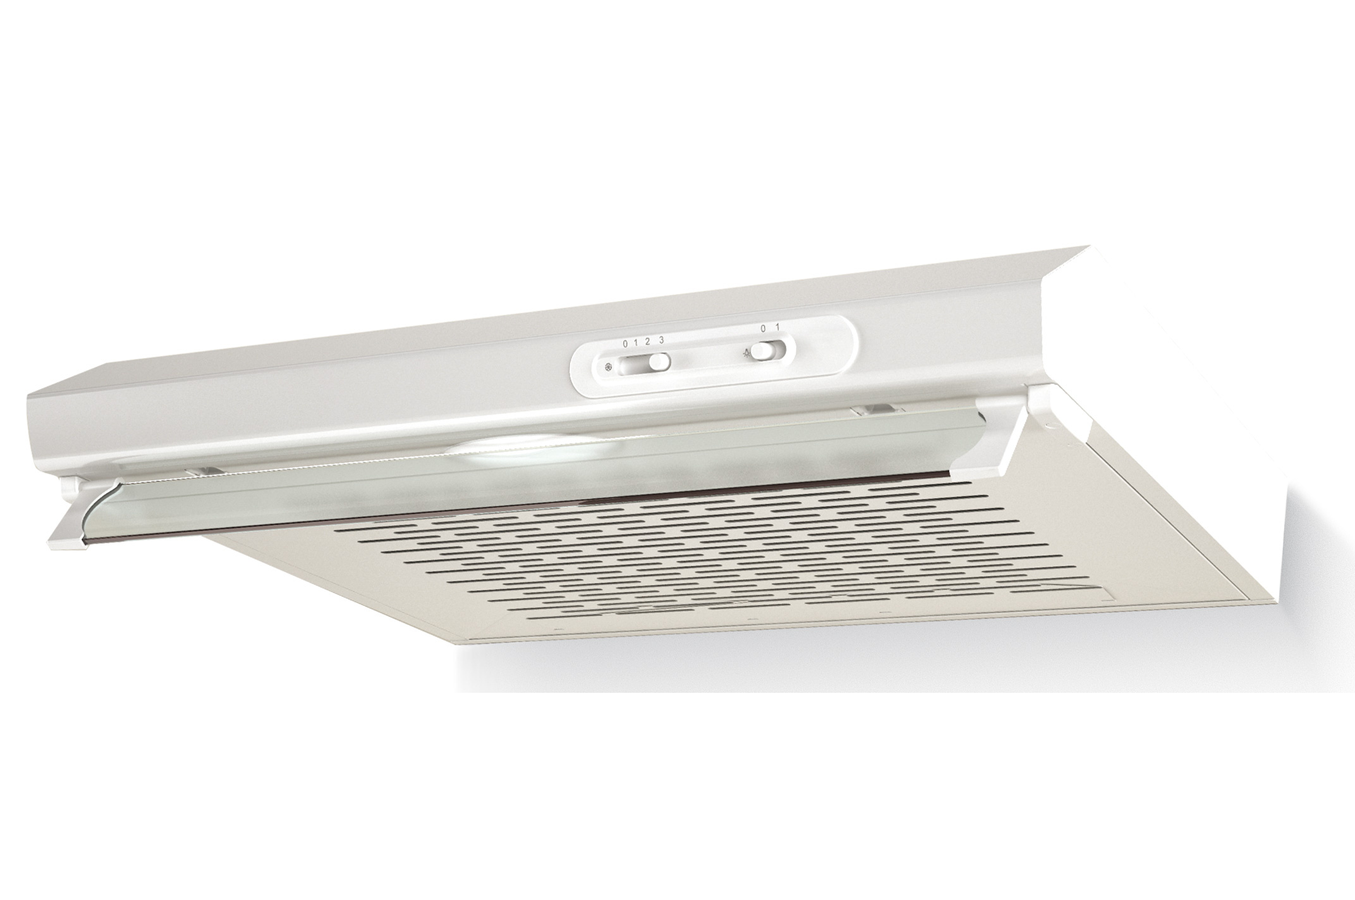 Hotte visi re proline shp60wh 4137167 darty for Prix des cuisines darty